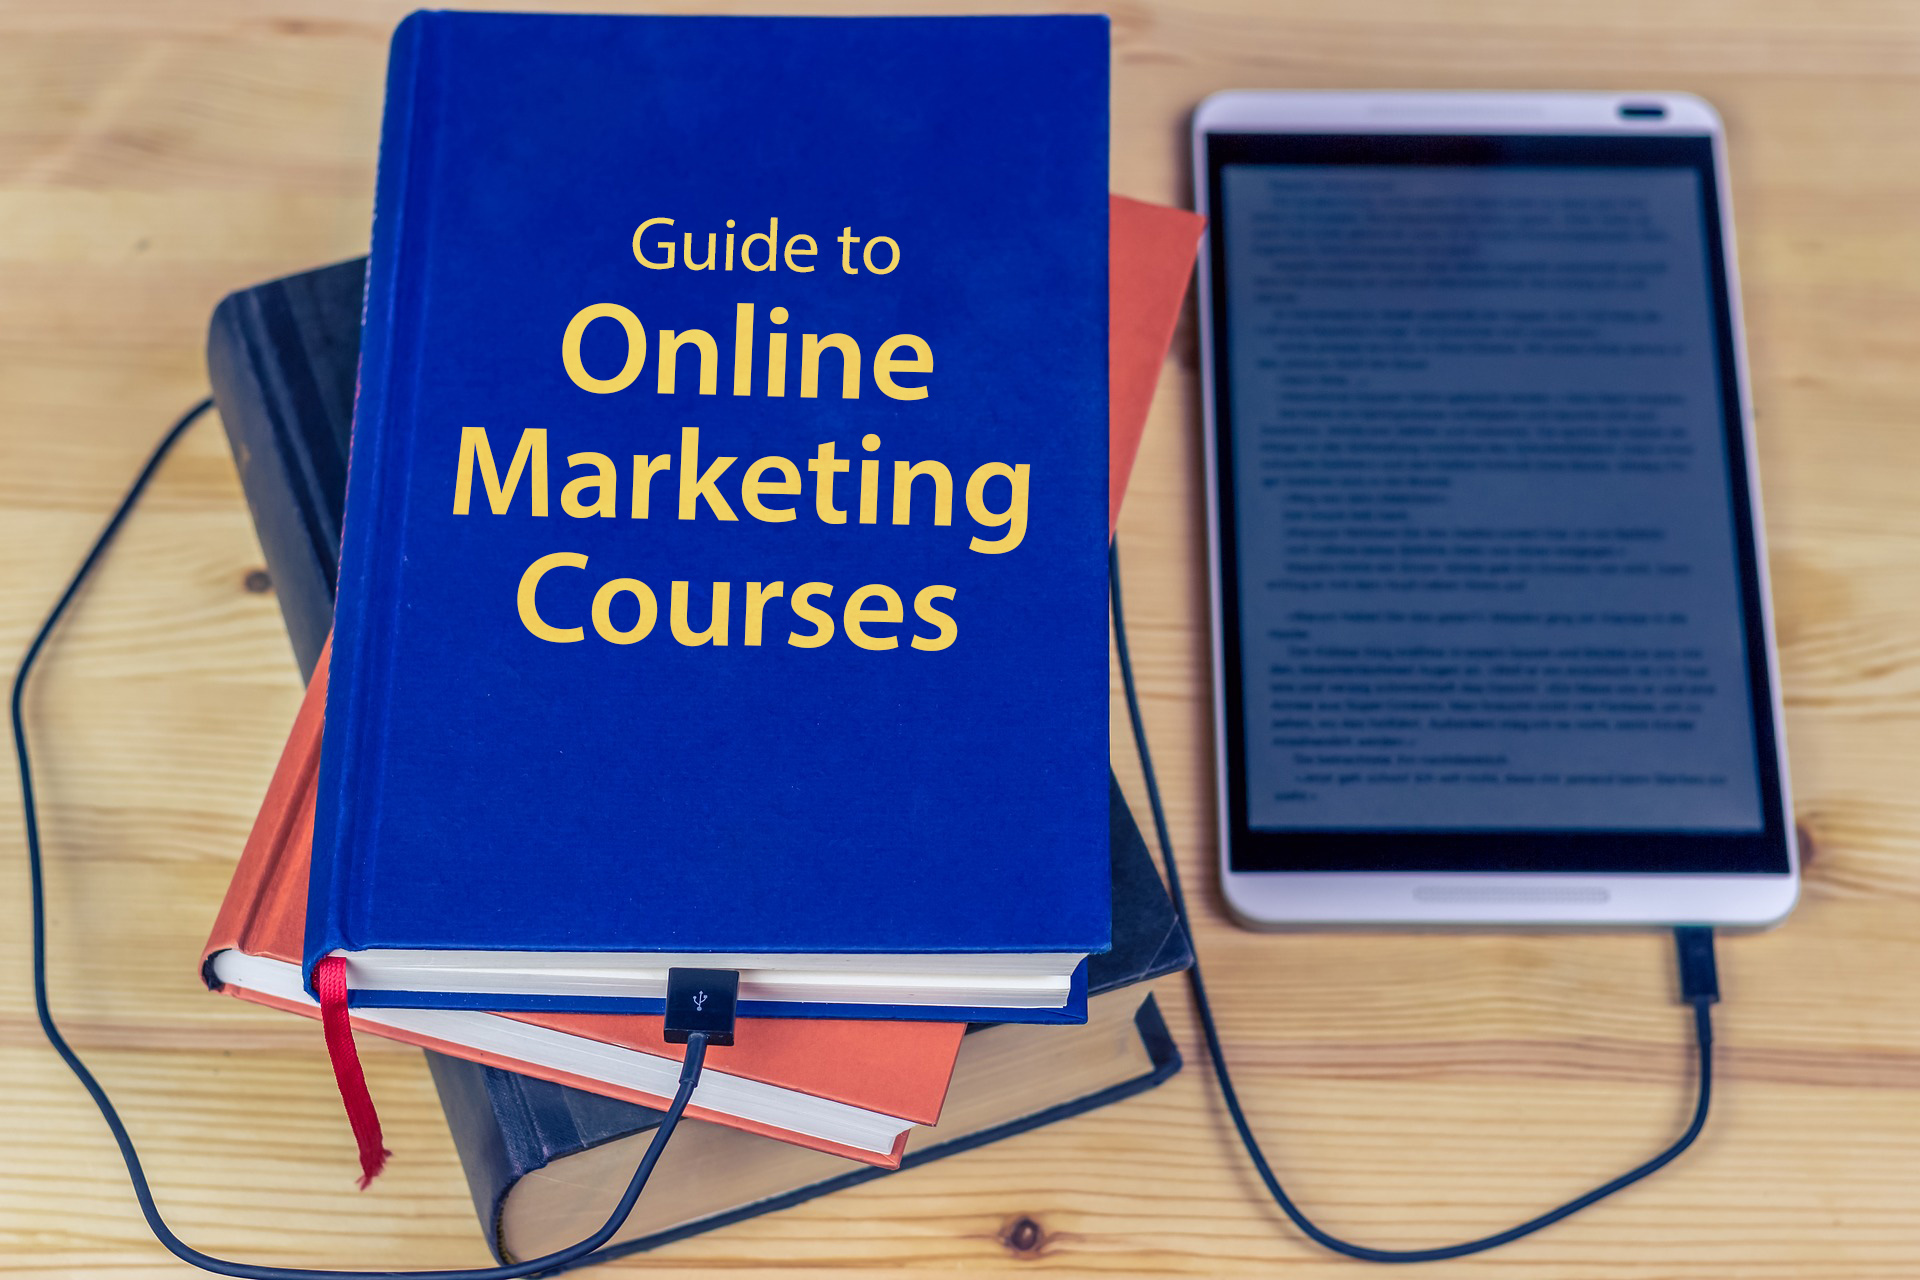 A Guide to Online Marketing Courses